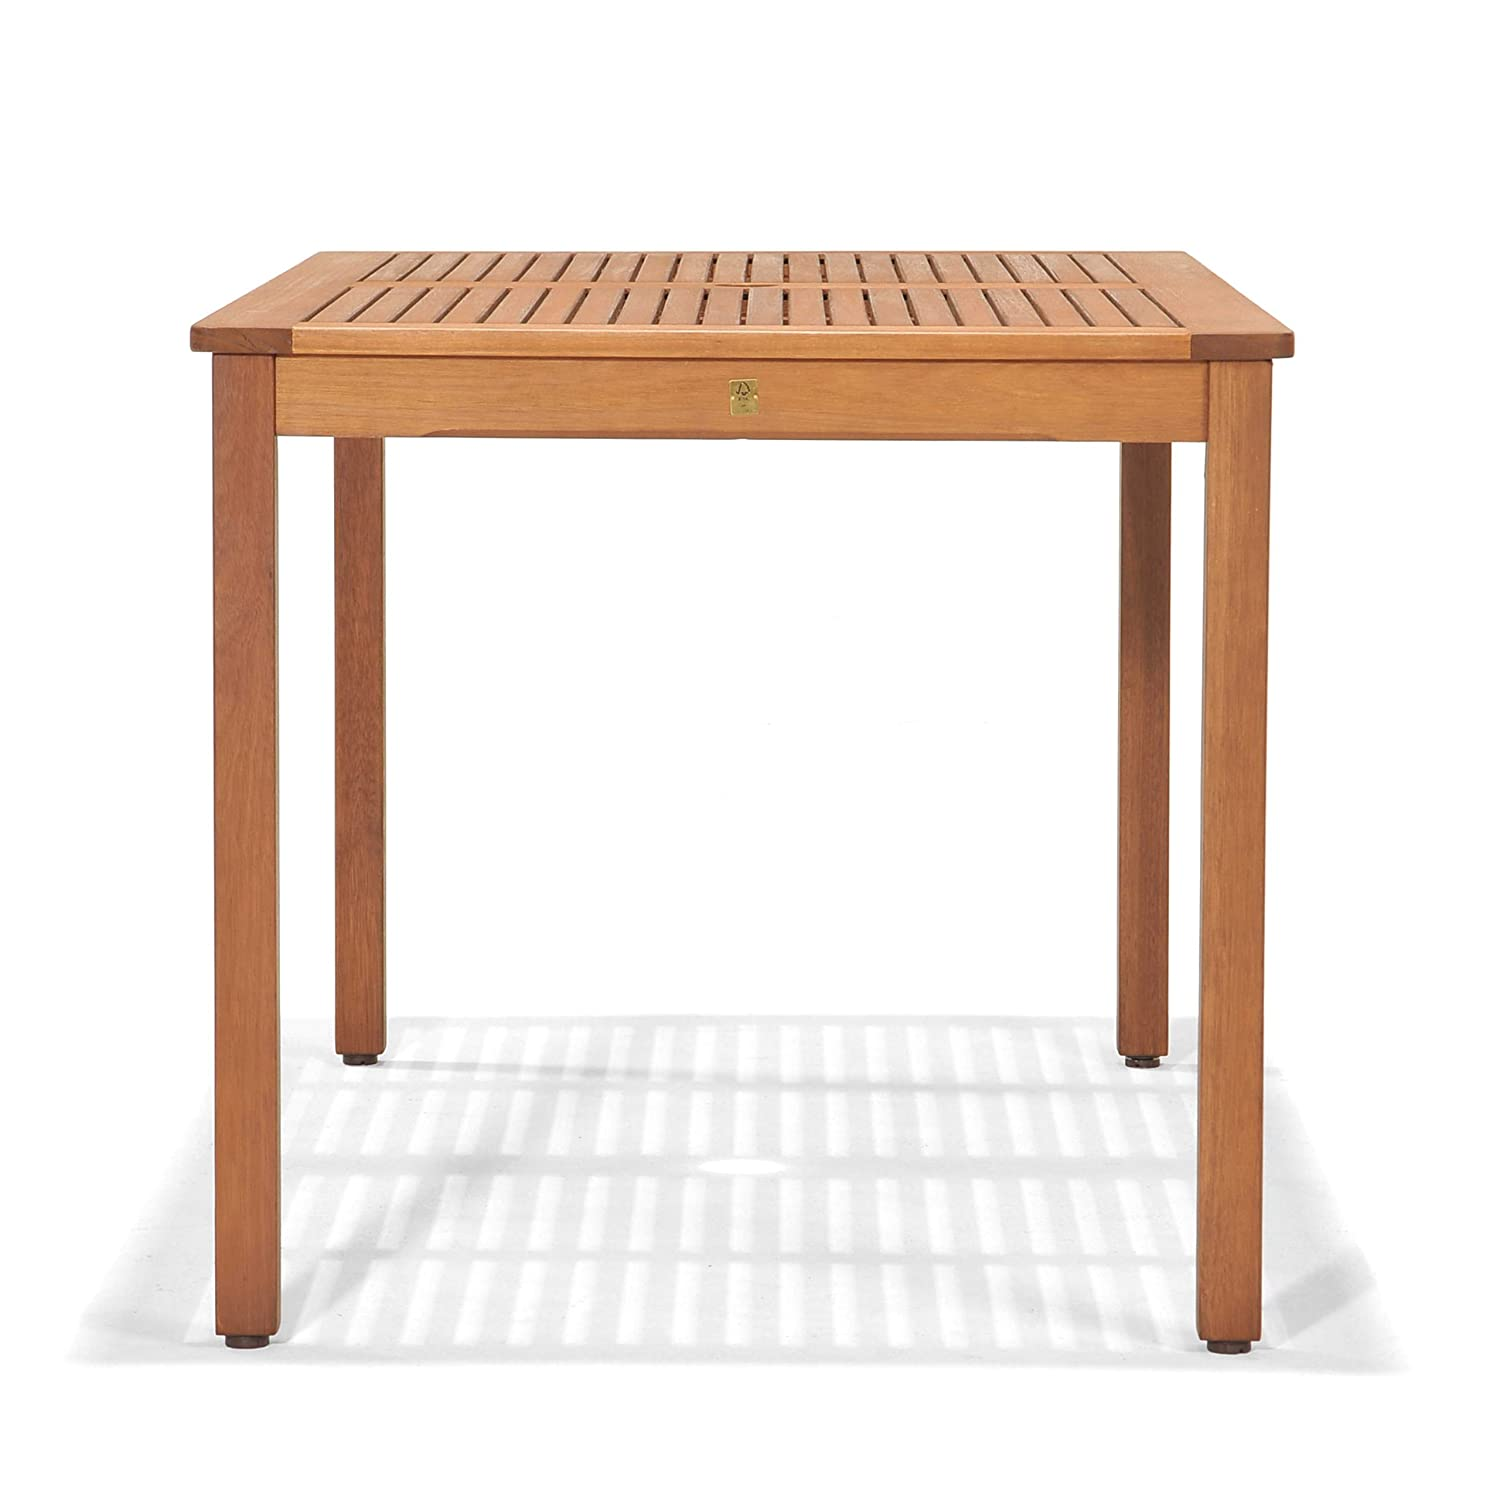 Scan Chichester FSC Eucalyptus Wood Outdoor 6 Seater Dining